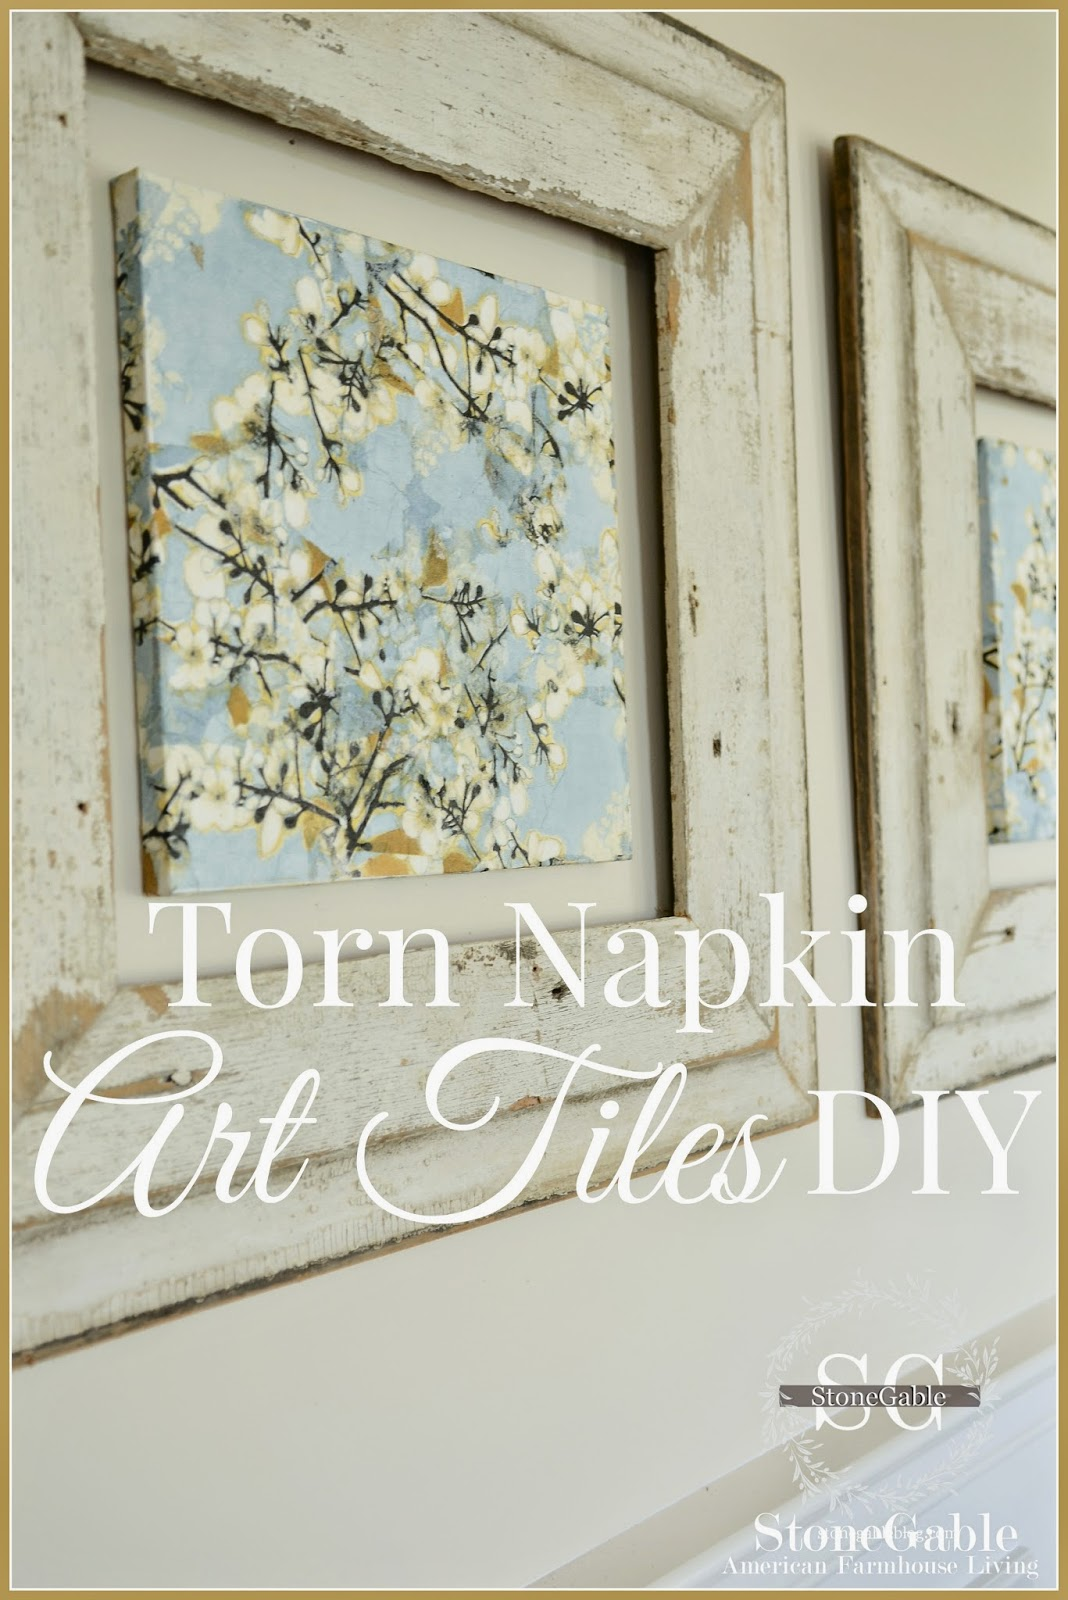 Torn napkin art tiles diy stonegable this is one of those rare projects that i could do over and over and over again its easy and artistic and fun fun fun even if you are not crafty this jeuxipadfo Image collections